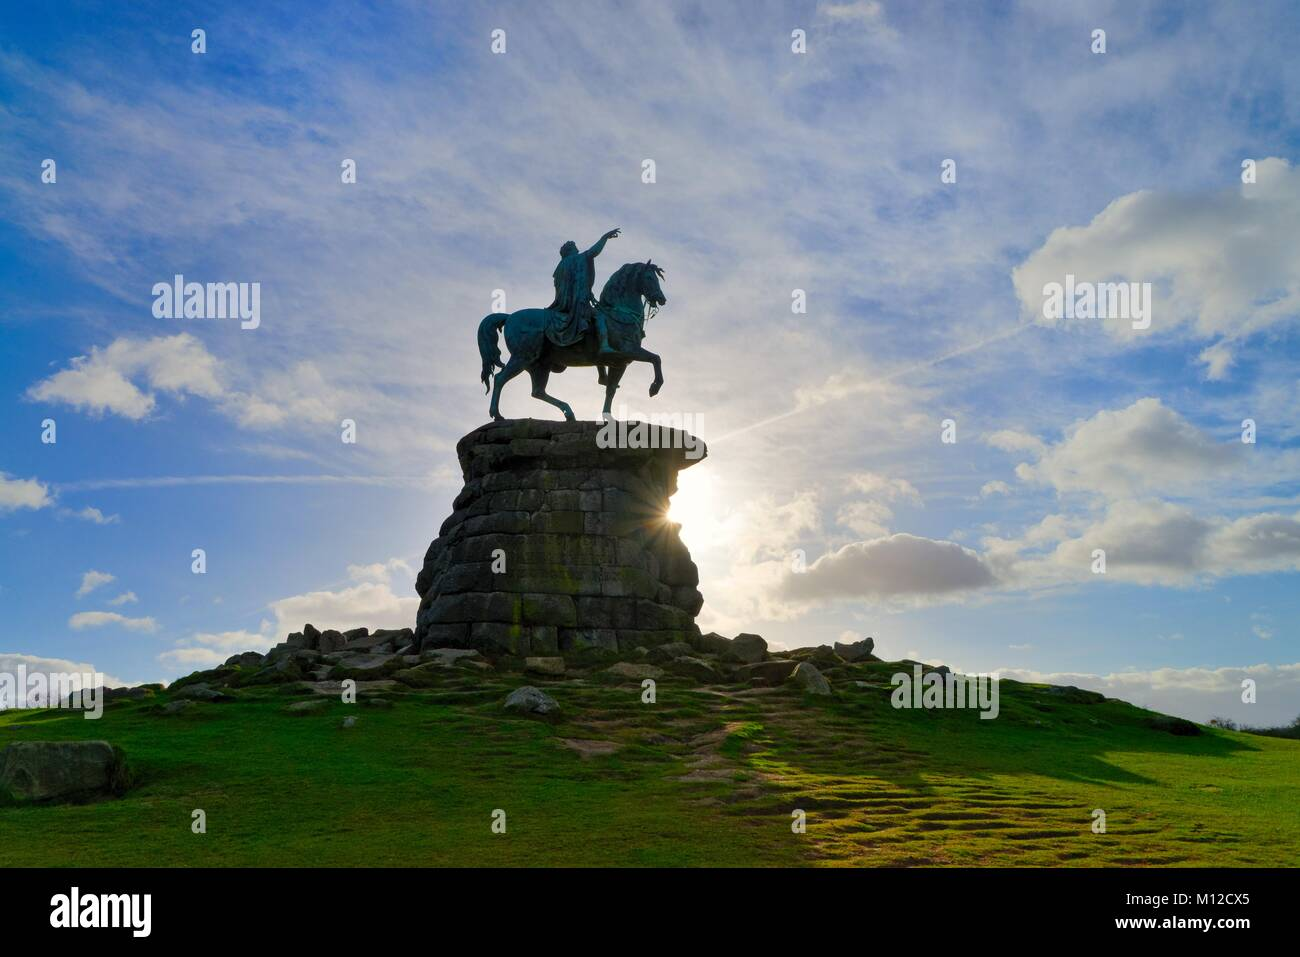 The equestrian statue of King George the Third in Windsor  Royal Park Berkshire England UK - Stock Image